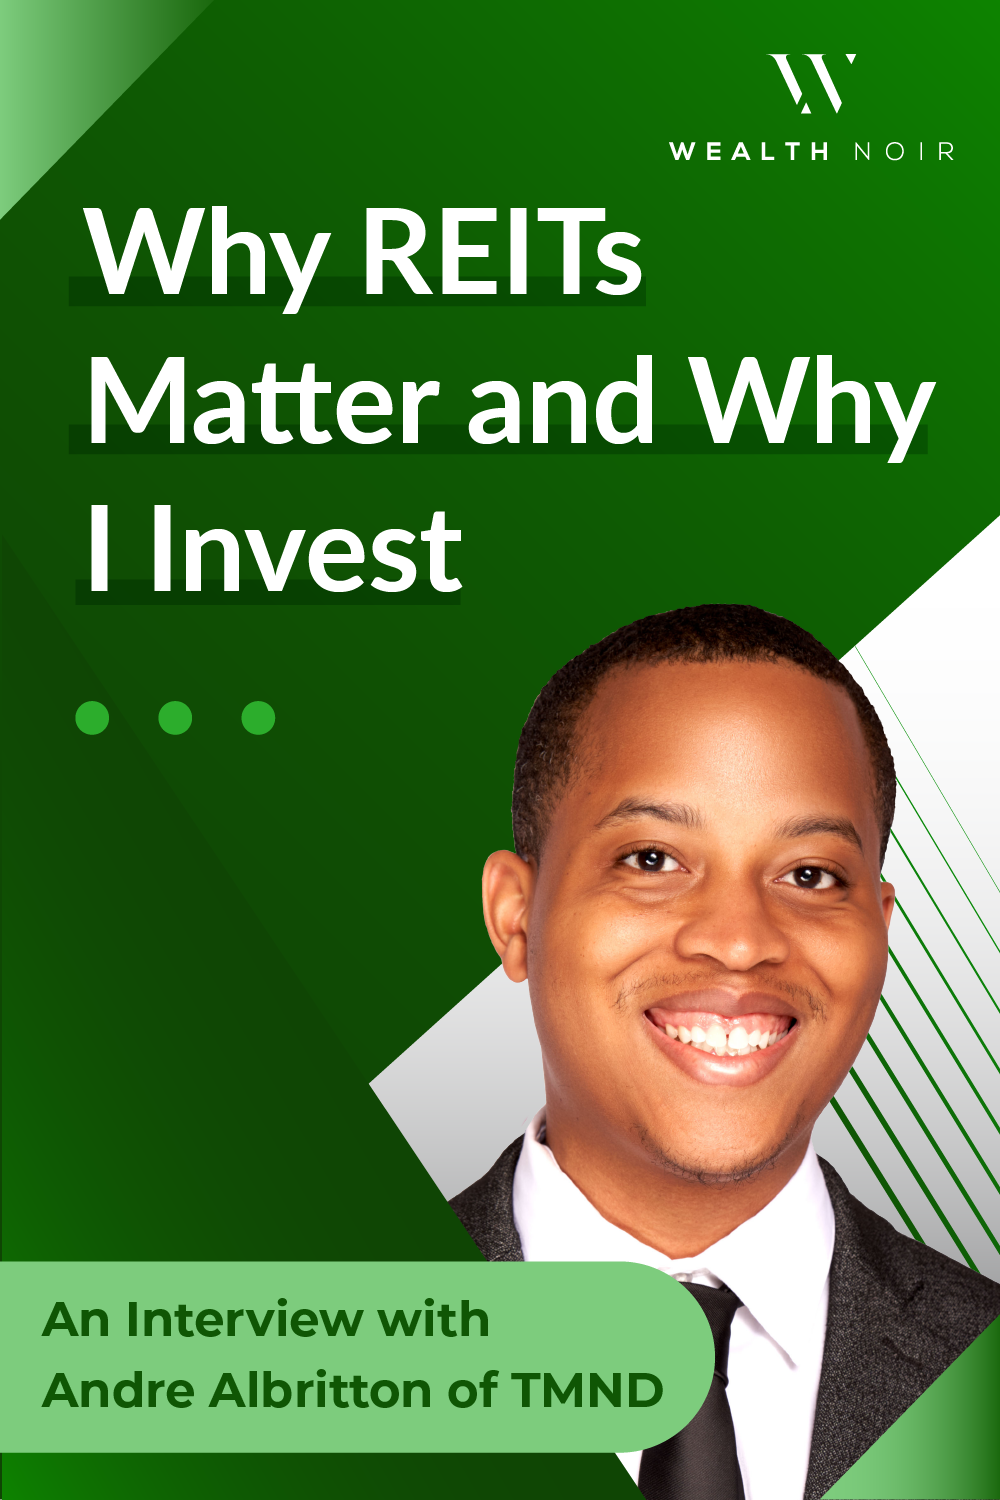 Why REITs Matter and Why I Invest: An Interview with Andre Albritton of TMND